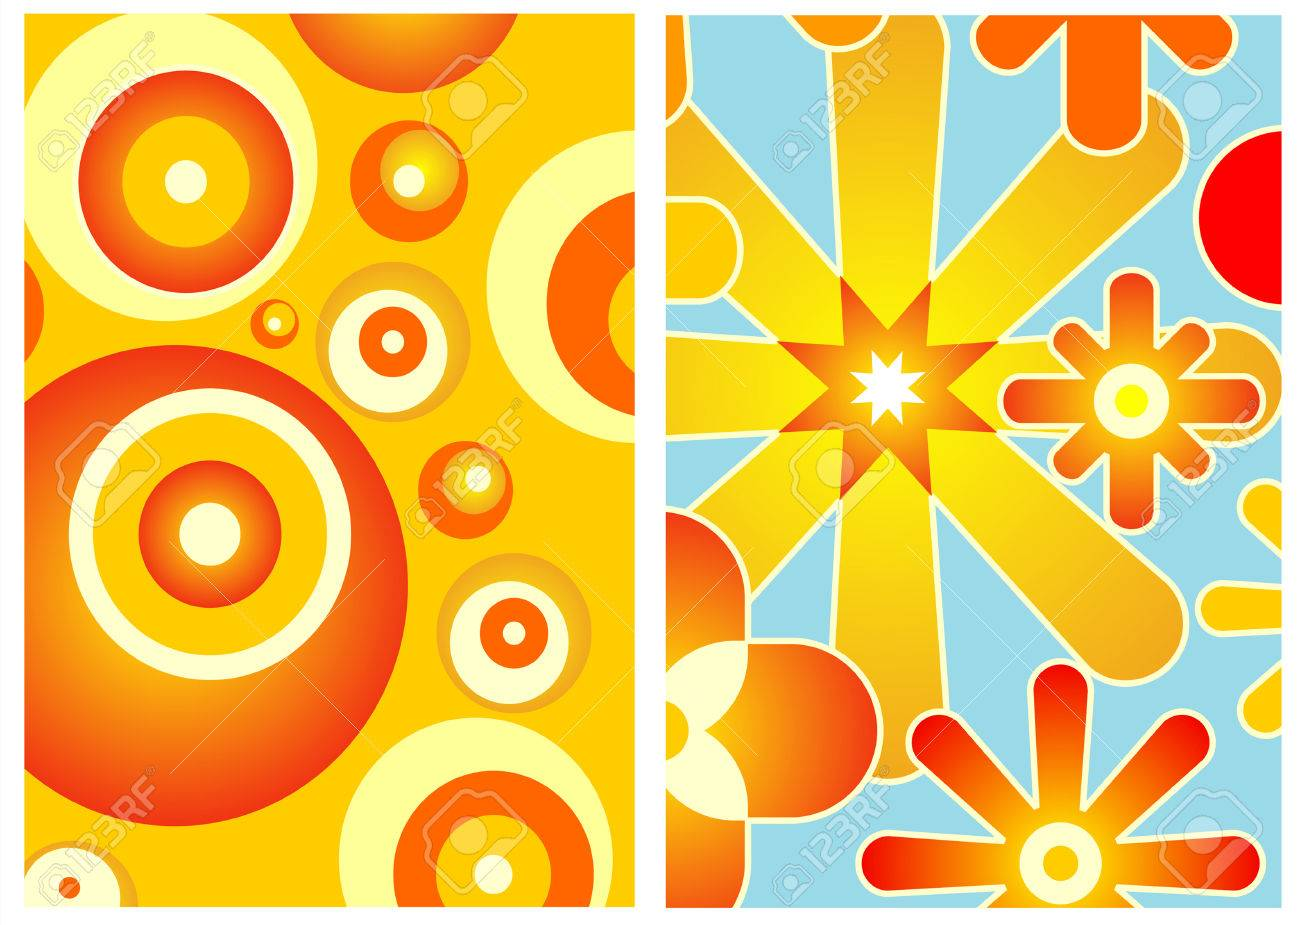 Two Wallpapers Of 70s Decor Art Royalty Free Cliparts, Vectors, And ...